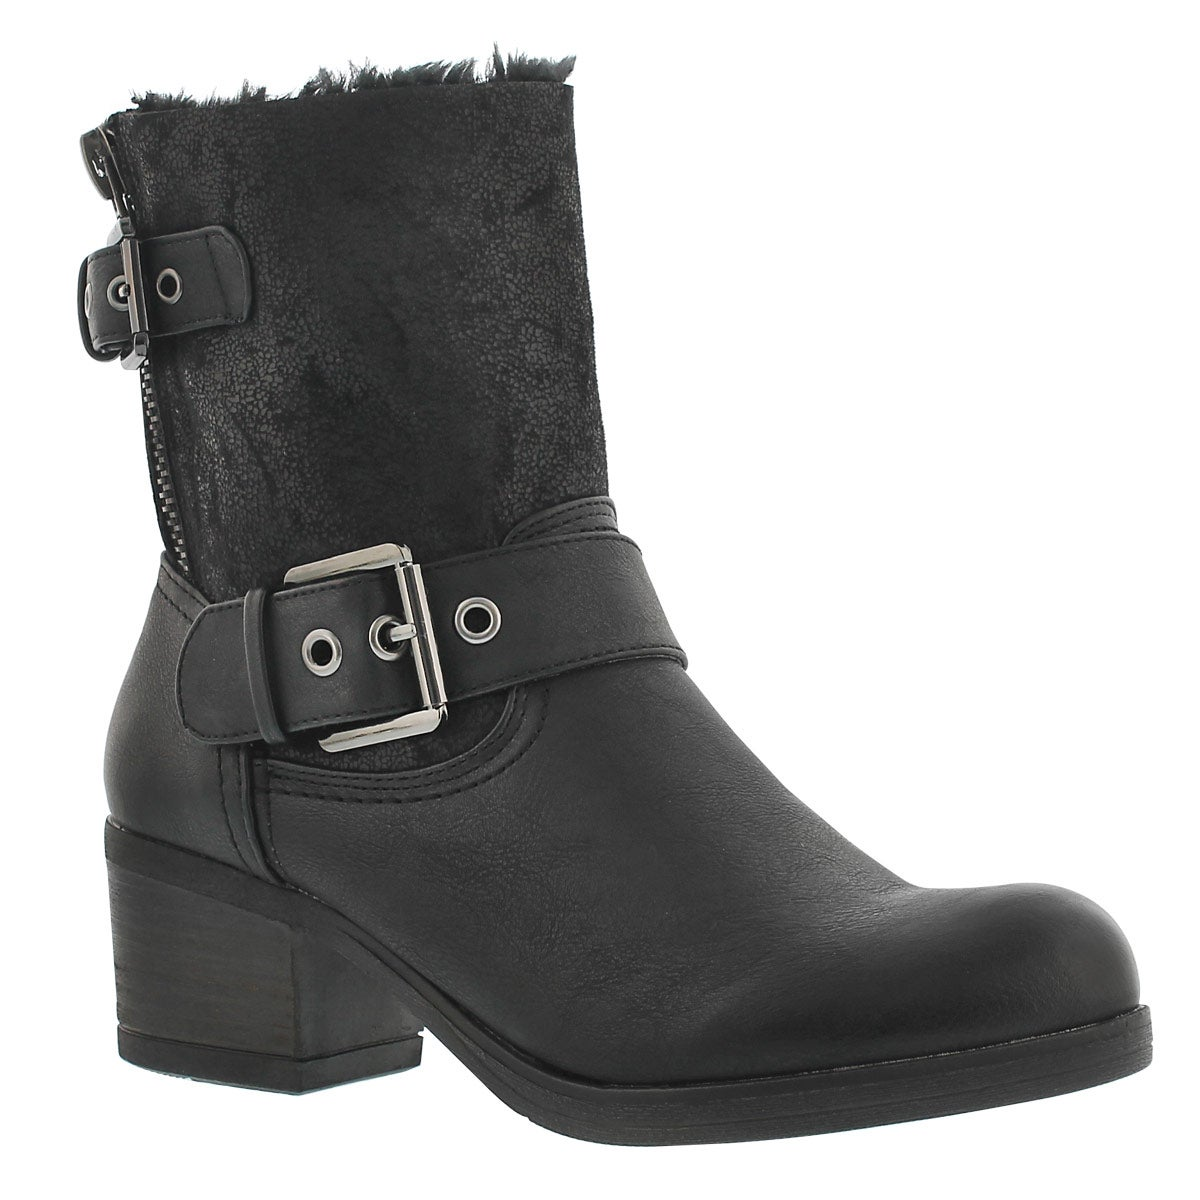 Women's BOBBI JO2 black casual boots